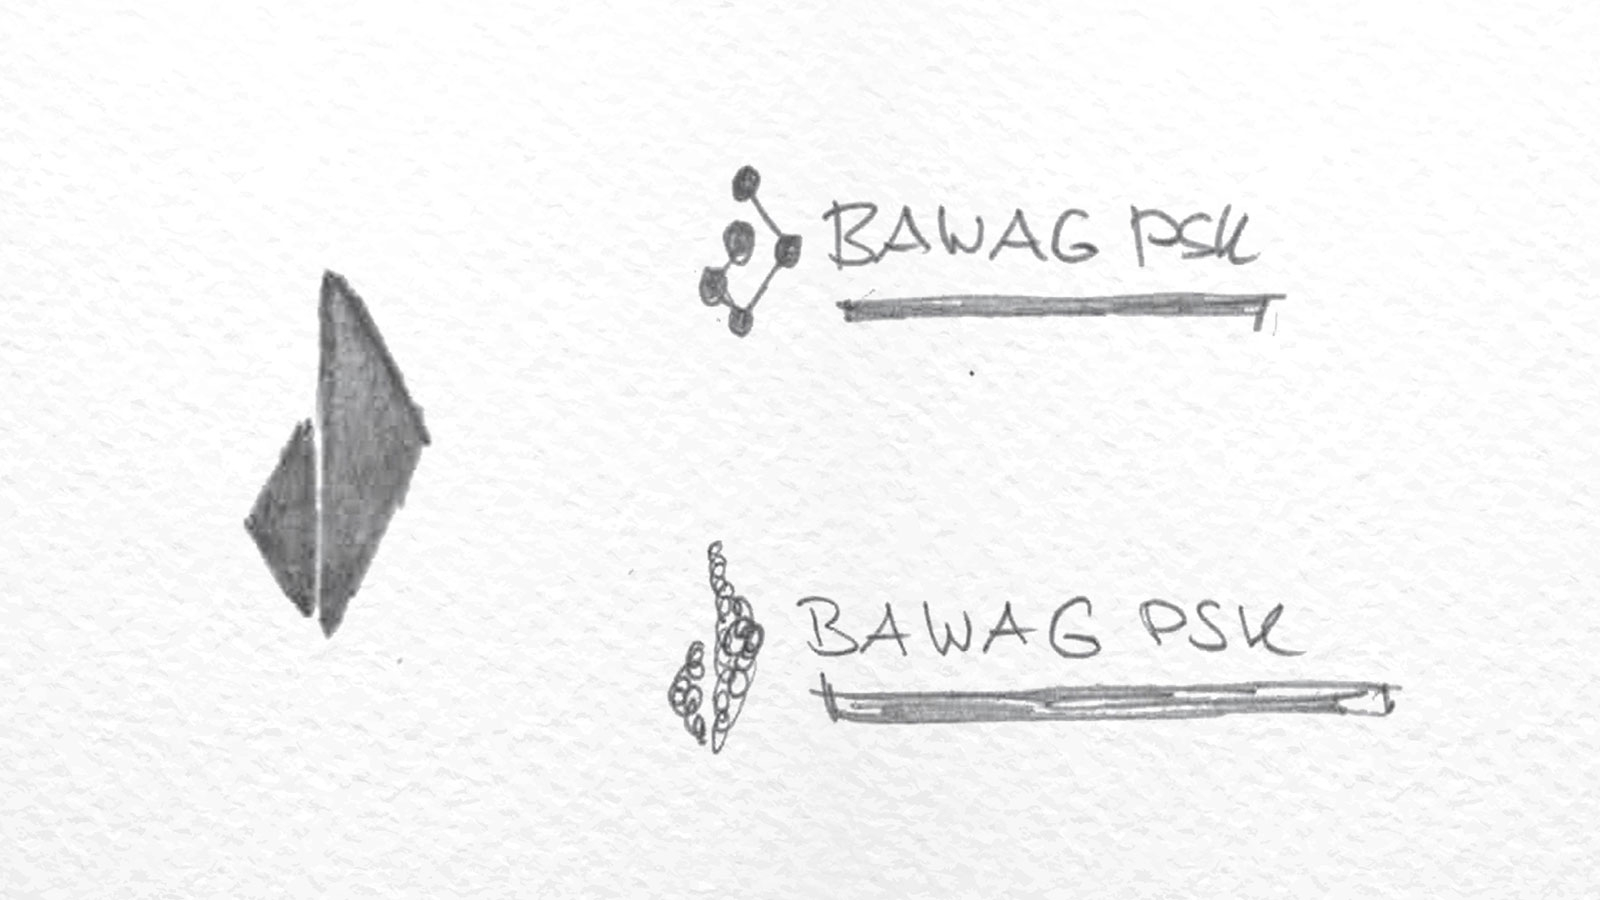 BAWAG PSK Betriebsrat | bawagpsk-betriebsrat.at | 2017 (Logo Scrbible 01) © echonet communication